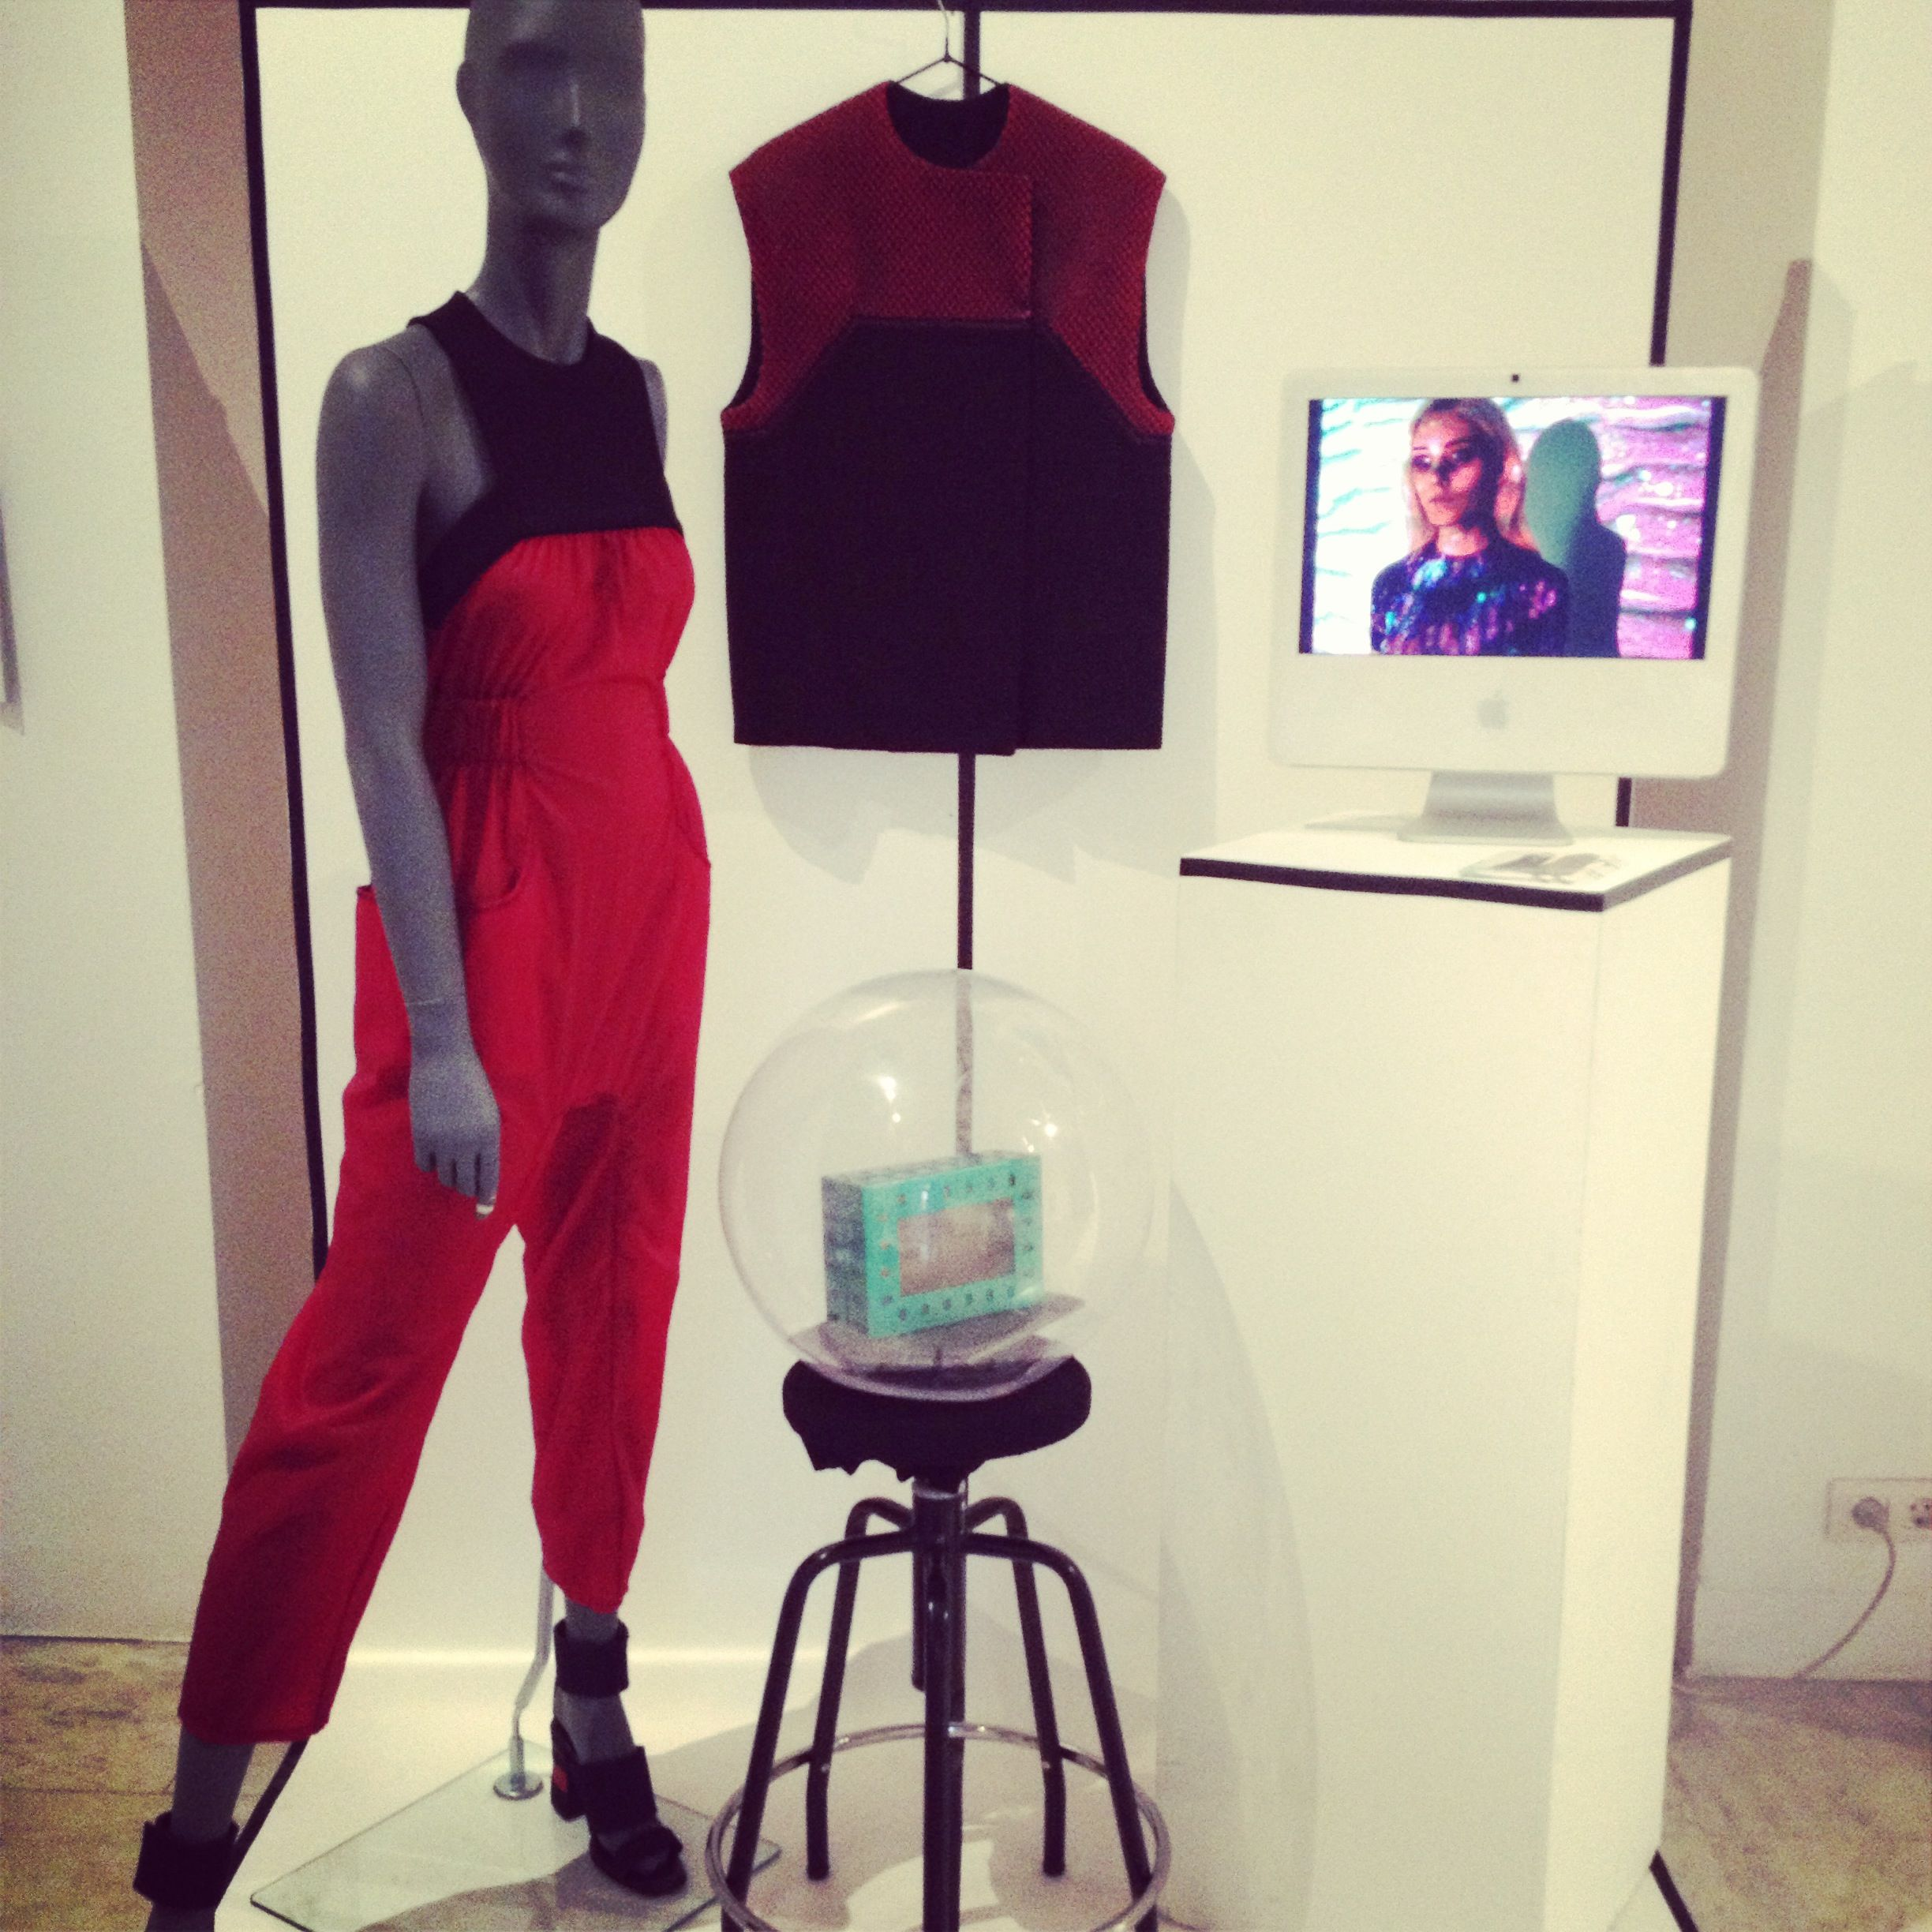 ... exposition - TRANSLUCENT JUMPSUIT & TECH VEST... #kissharder #kiss #harder #cool #hot #swag #fashion #style #brand #onlinestore #streetstyle #modern #youth #tech #vest #jumpsuit #red #black #exposition #madrid